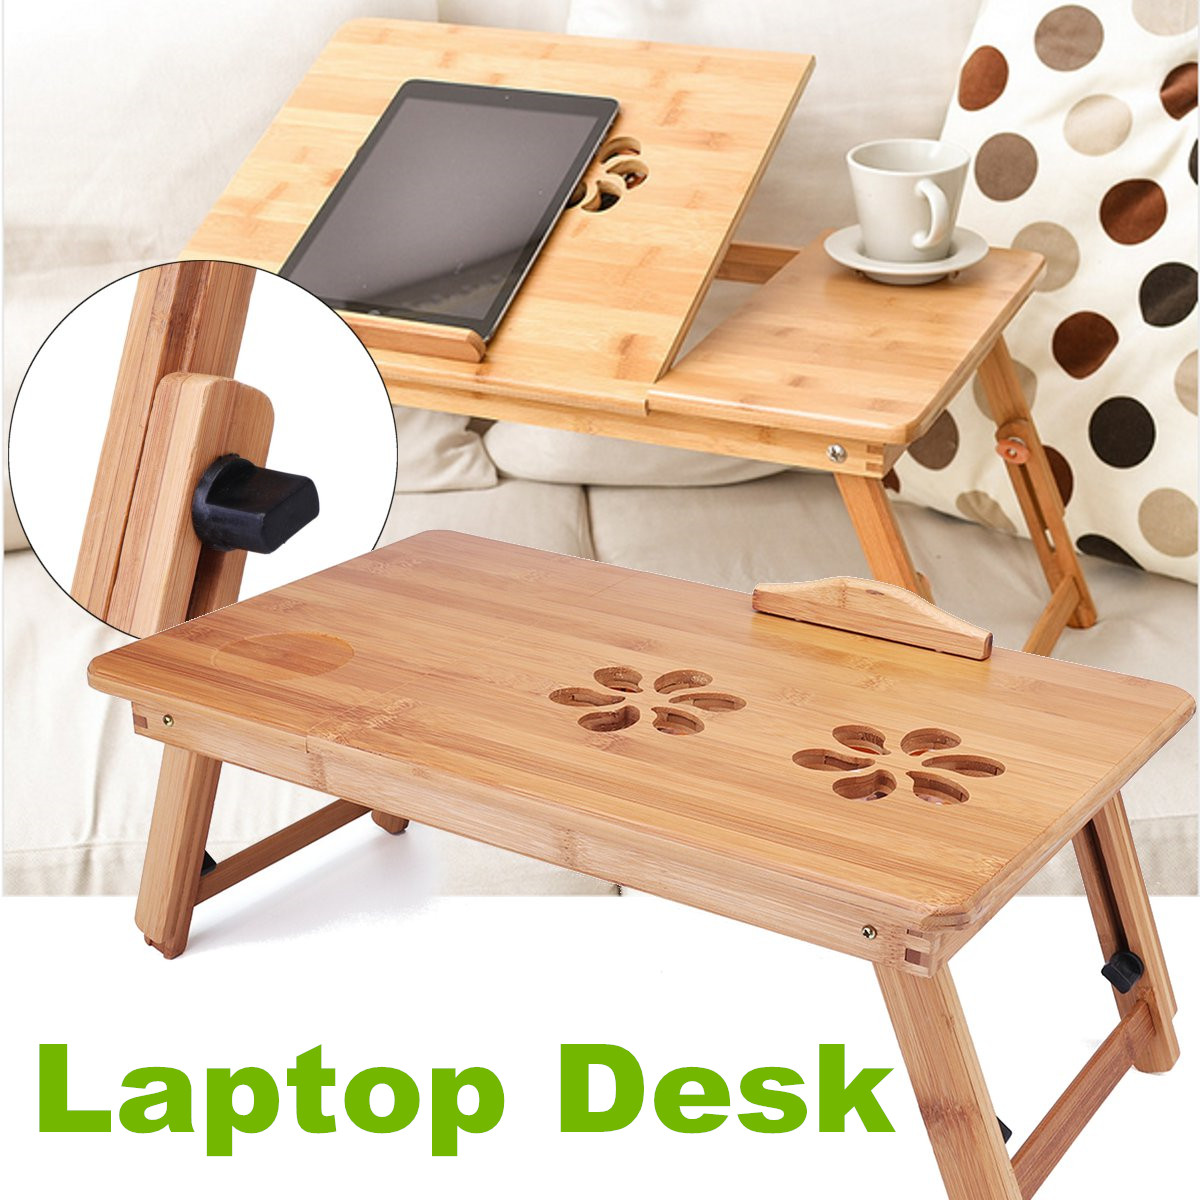 Portable Folding Lap Desk Bamboo Laptop Breakfast Tray Bed Table Stand With Fan Walmart Canada